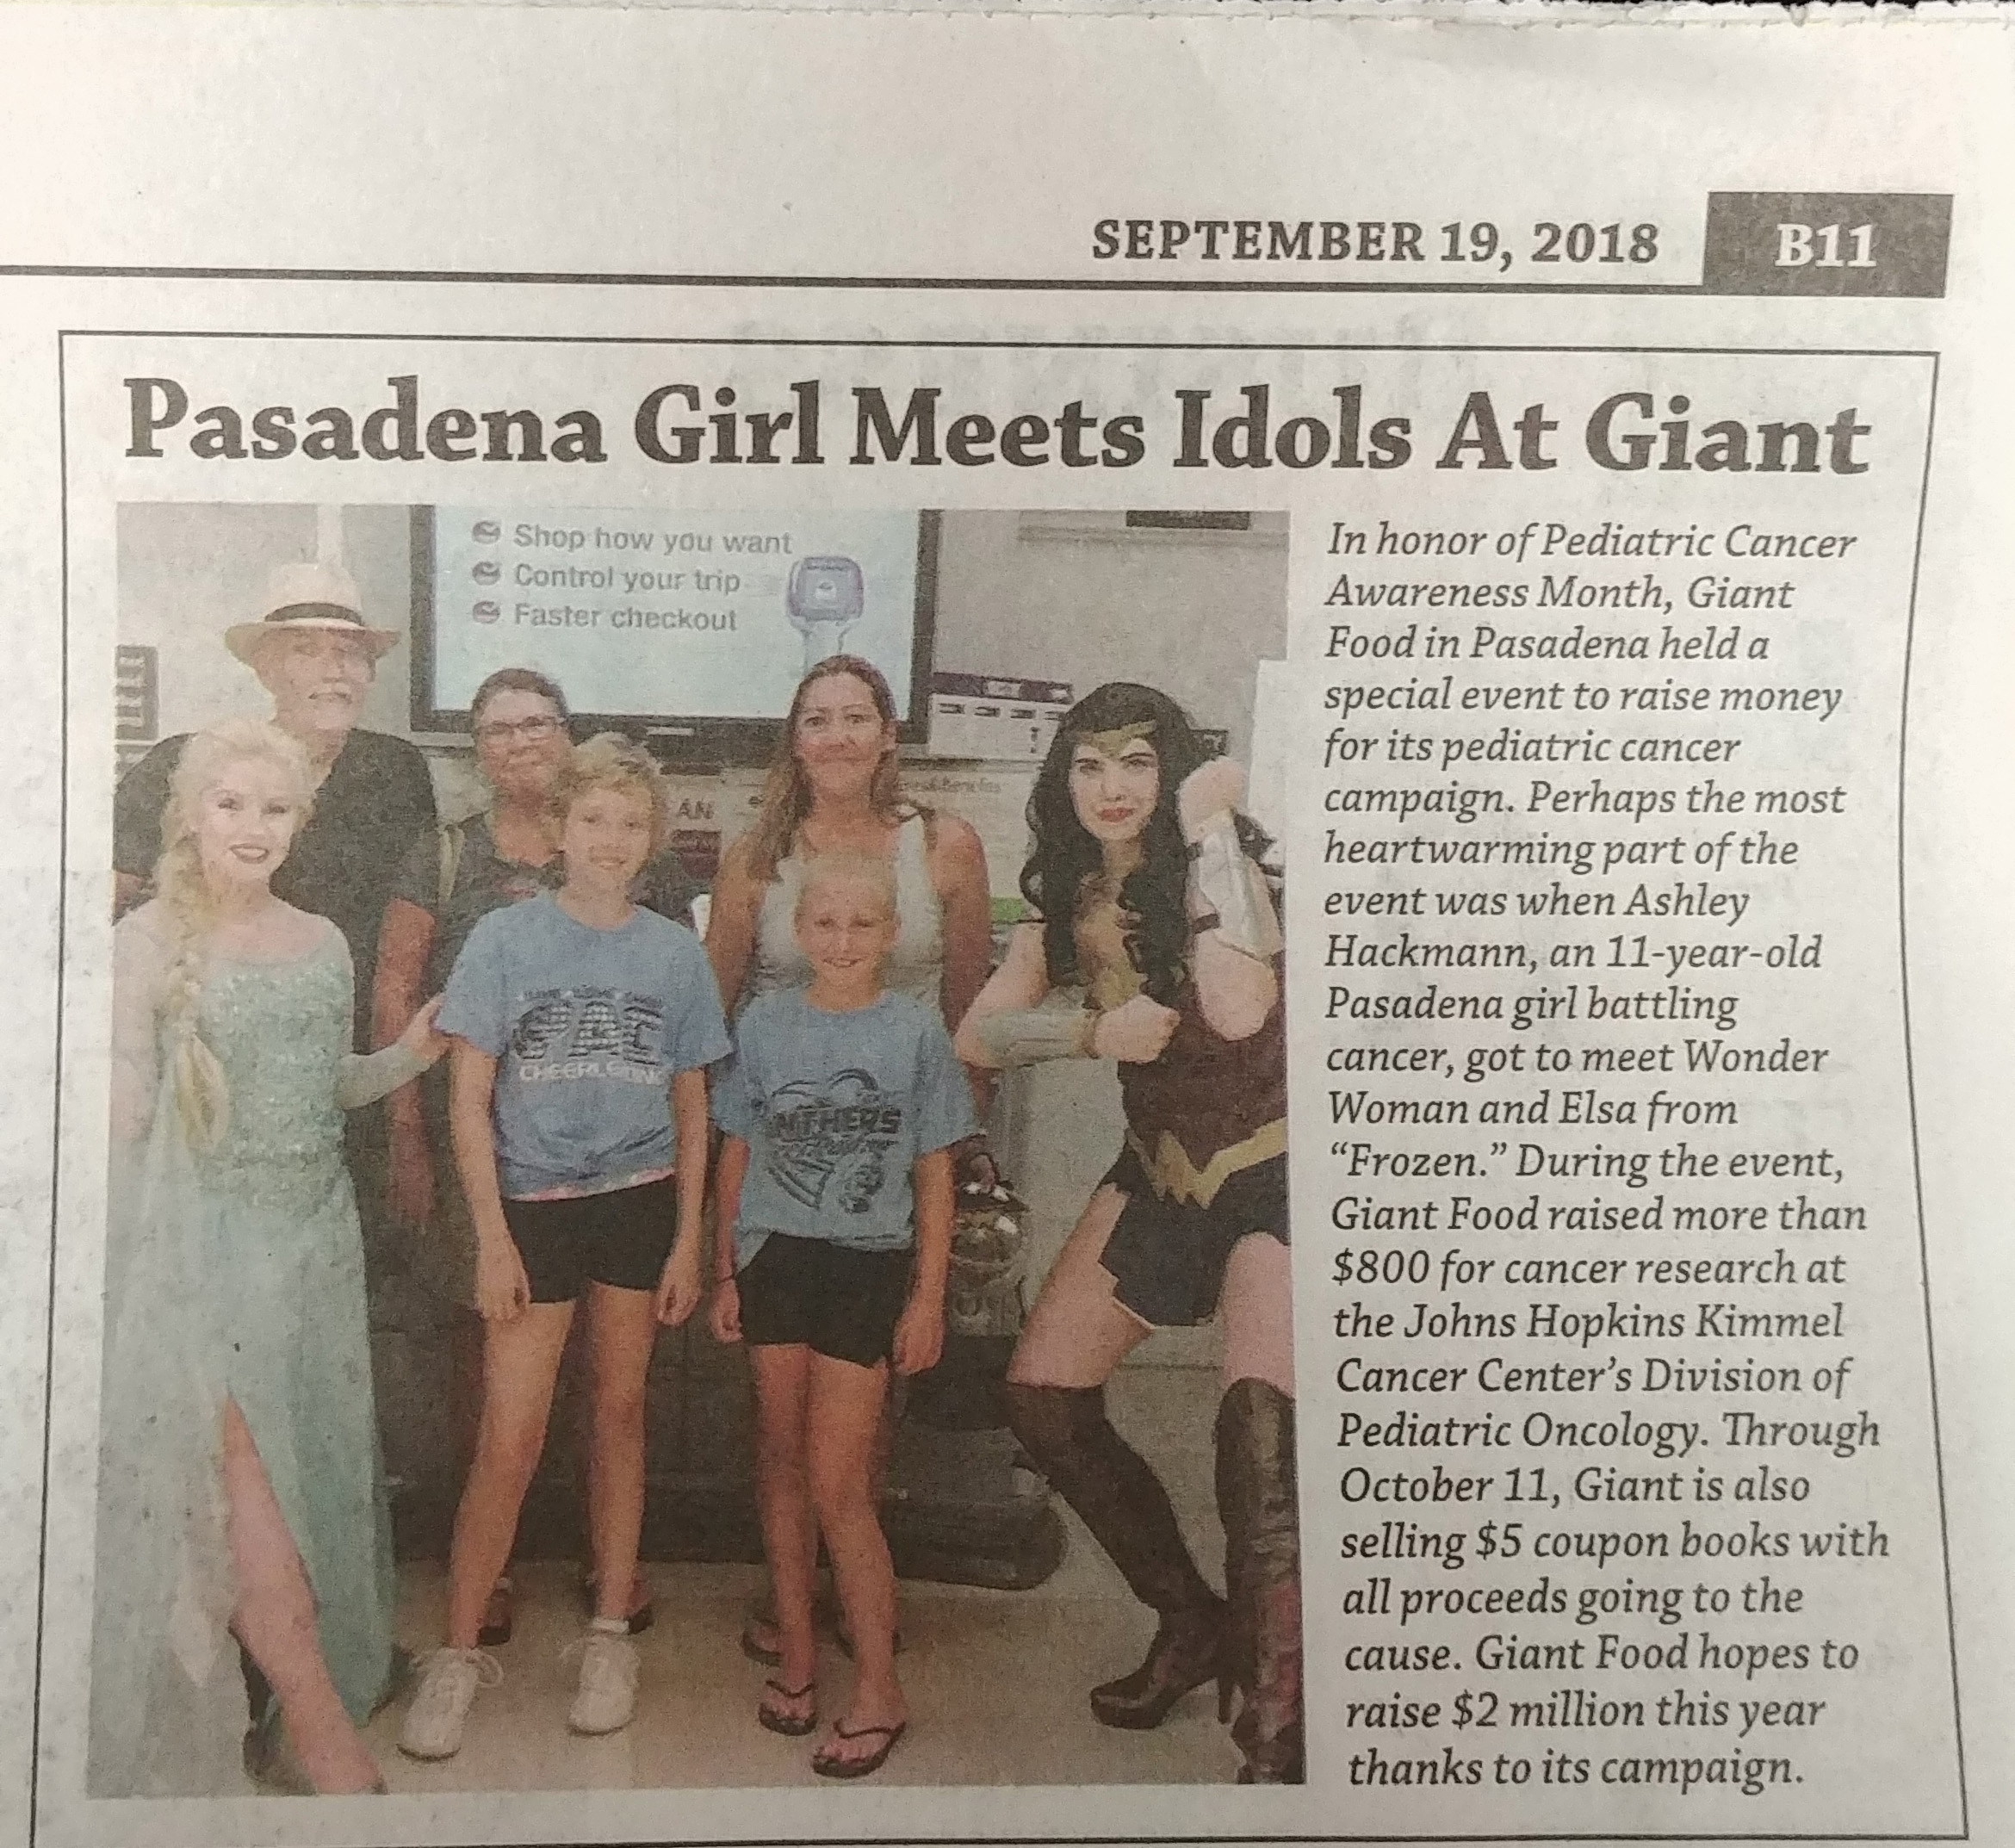 The Pasadena Voice Features Pediatric Cancer Ambassador Ashley Hackmann